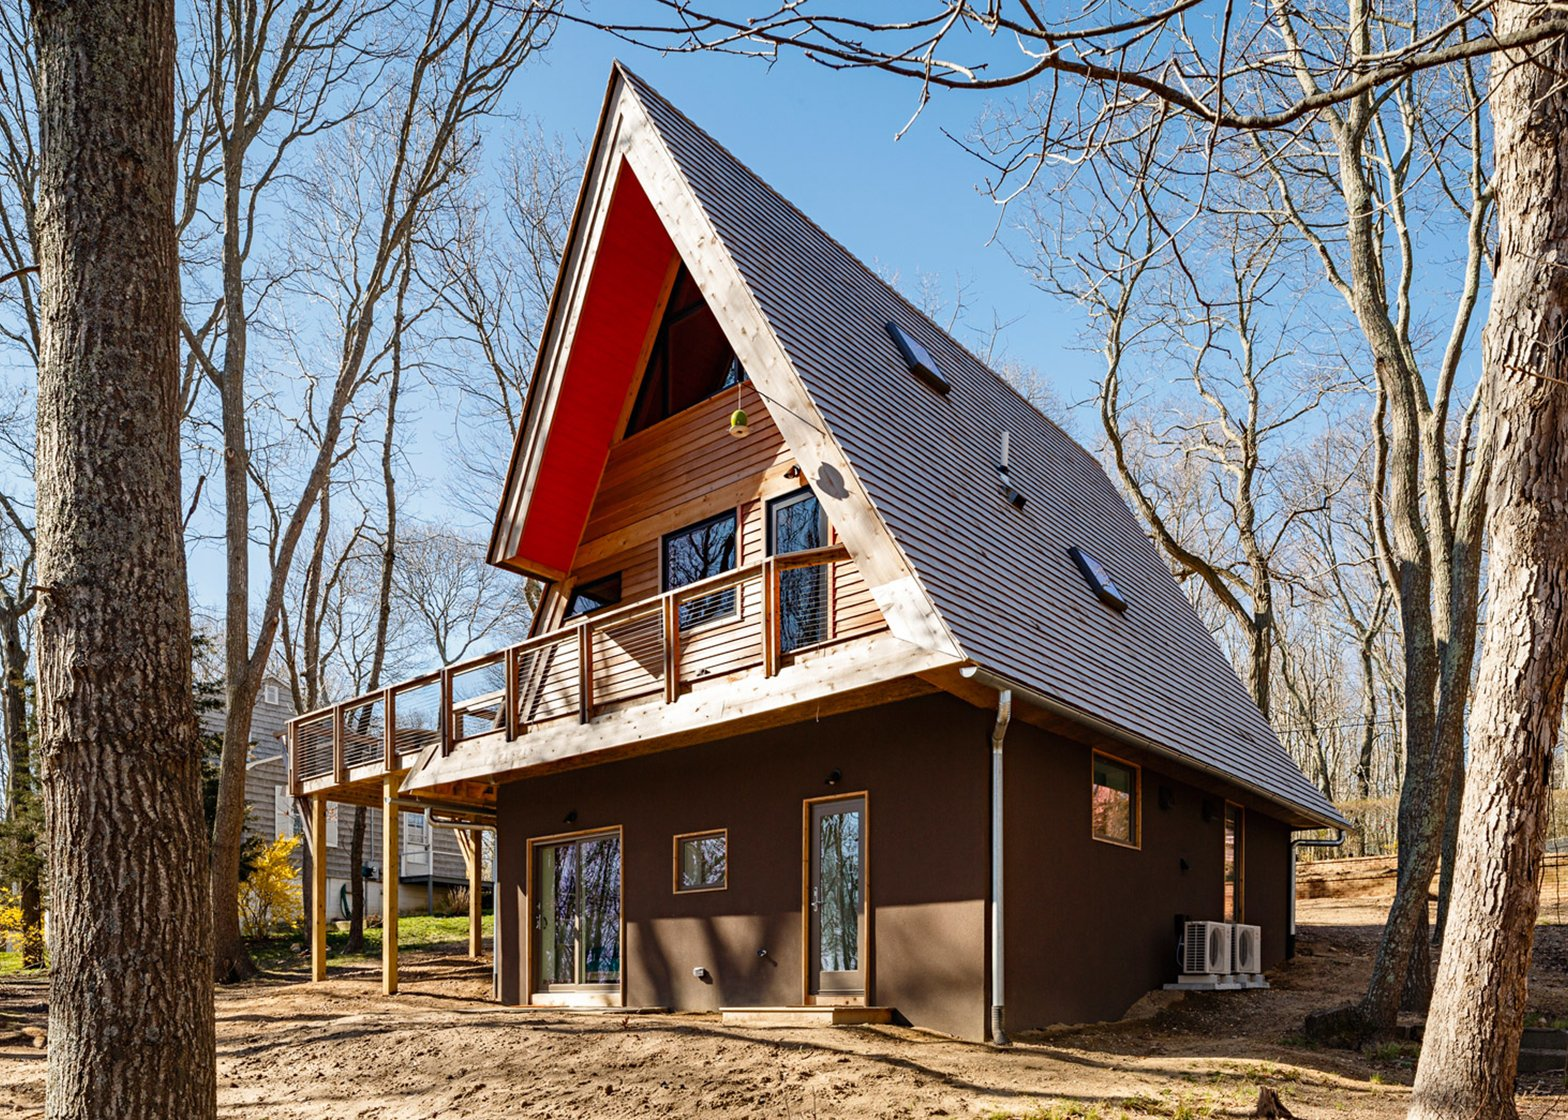 Triangle House, USA, by Doon Architecture